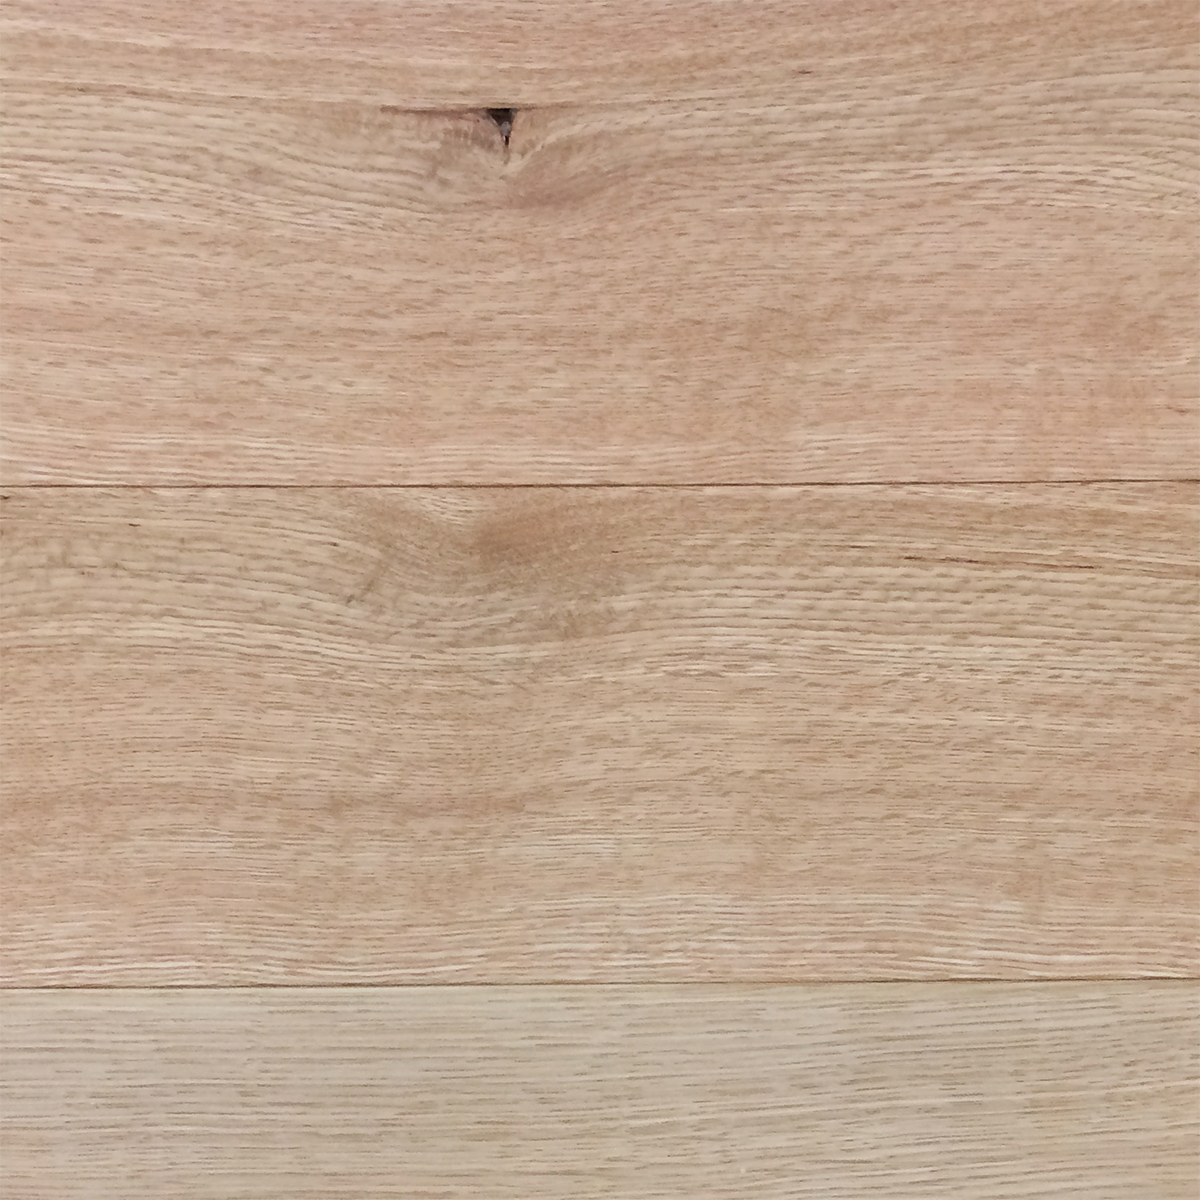 Pioneer Millworks Sustainably Harvested Oak with an Alumium Oxide Nano Finish